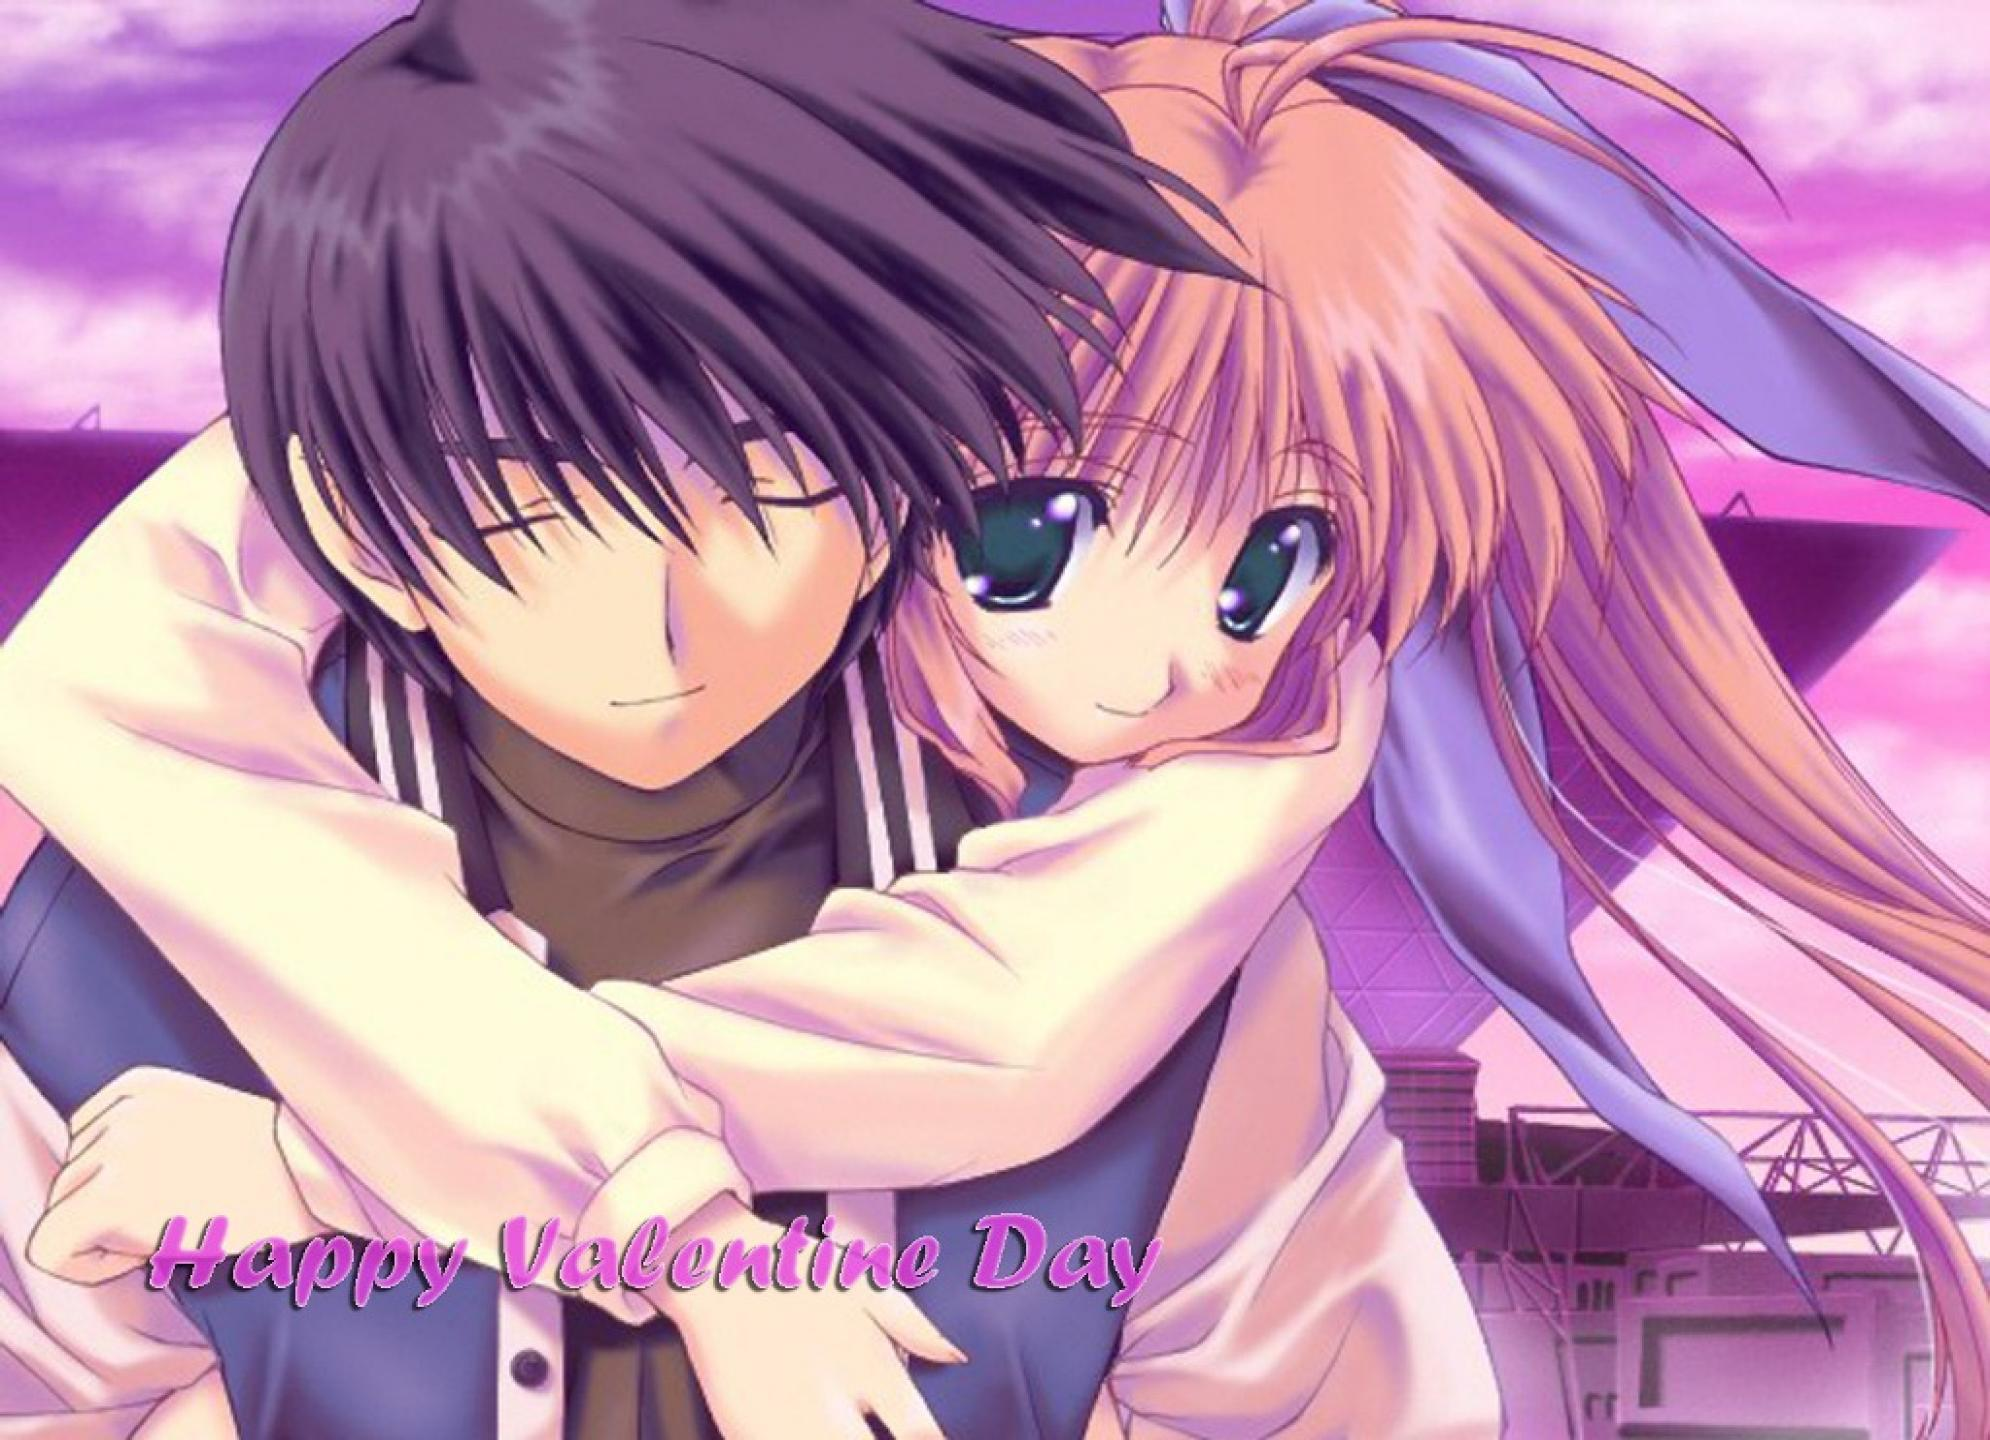 Wallpapers Anime Love Wallpaper Cave